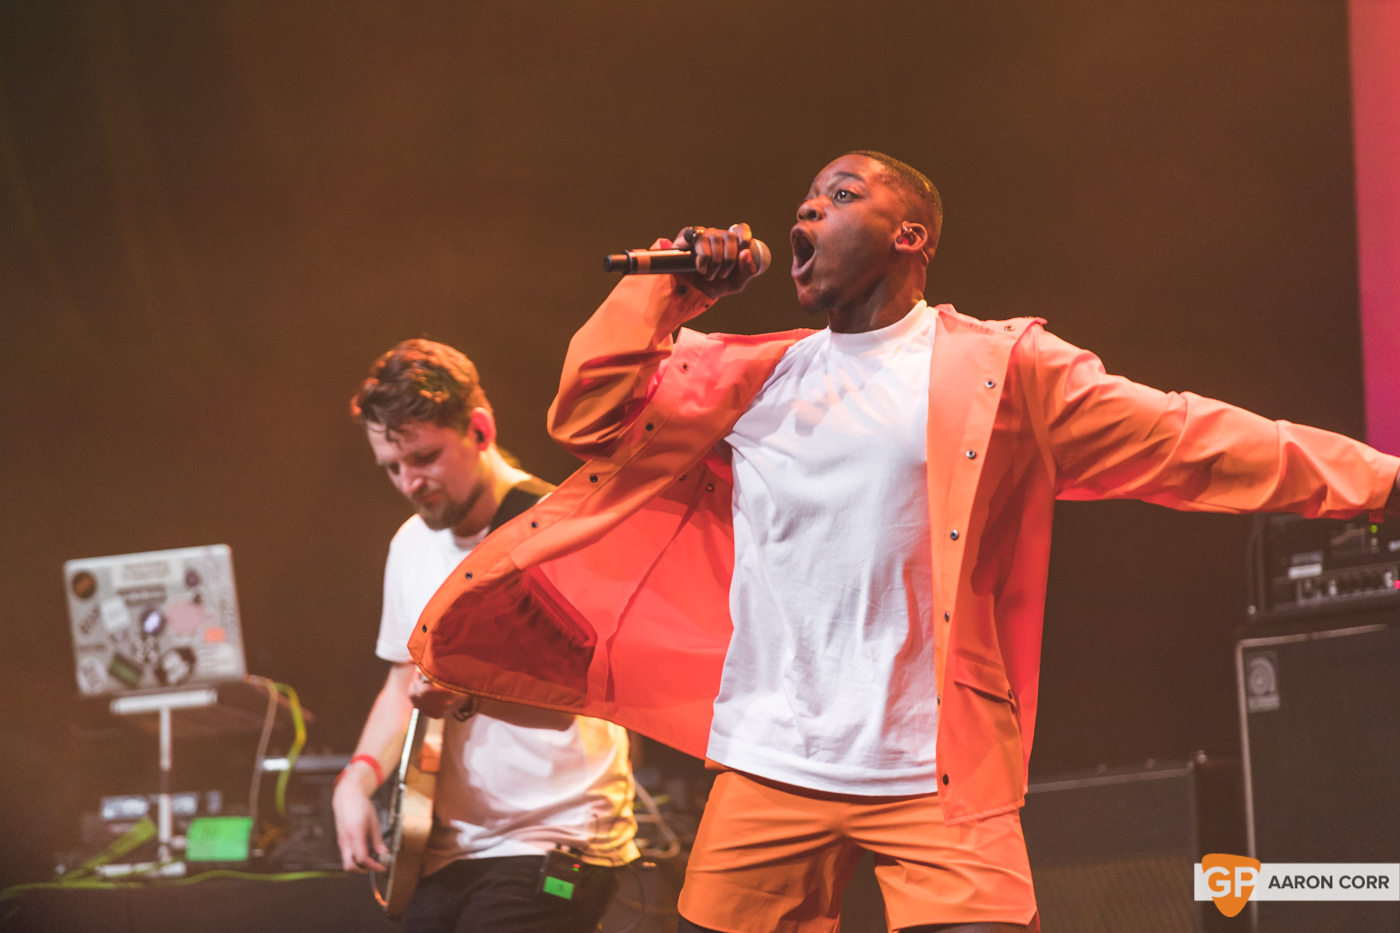 Jafaris at Choice Music Prize 2020 in Vicar Street, Dublin on 05-Mar-20 by Aaron Corr-2608